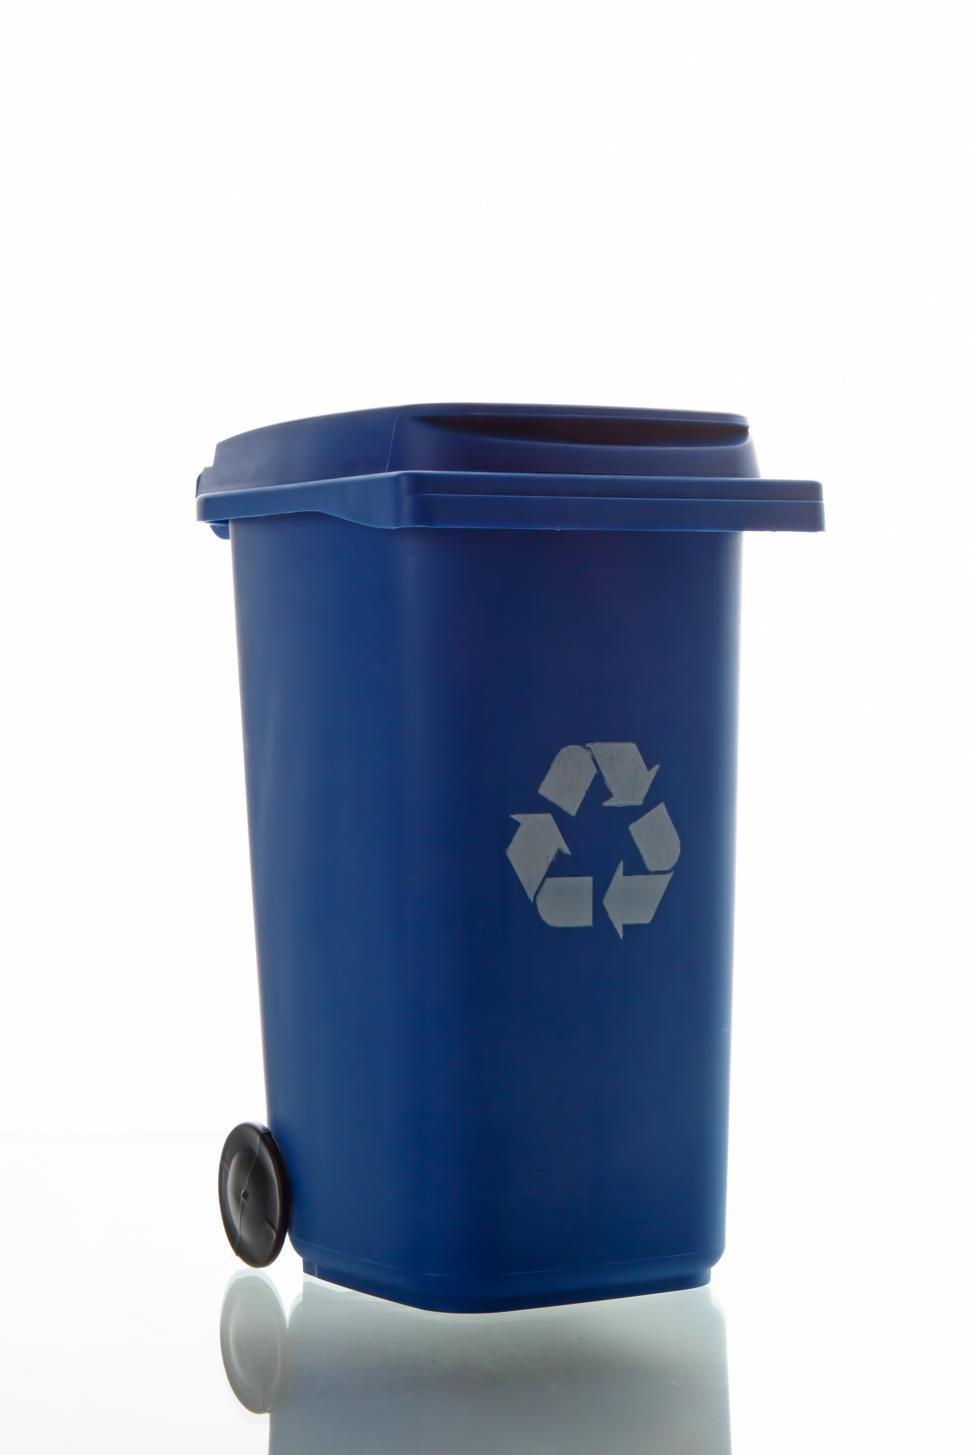 Download Free Stock HD Photo of Recycle bin Online